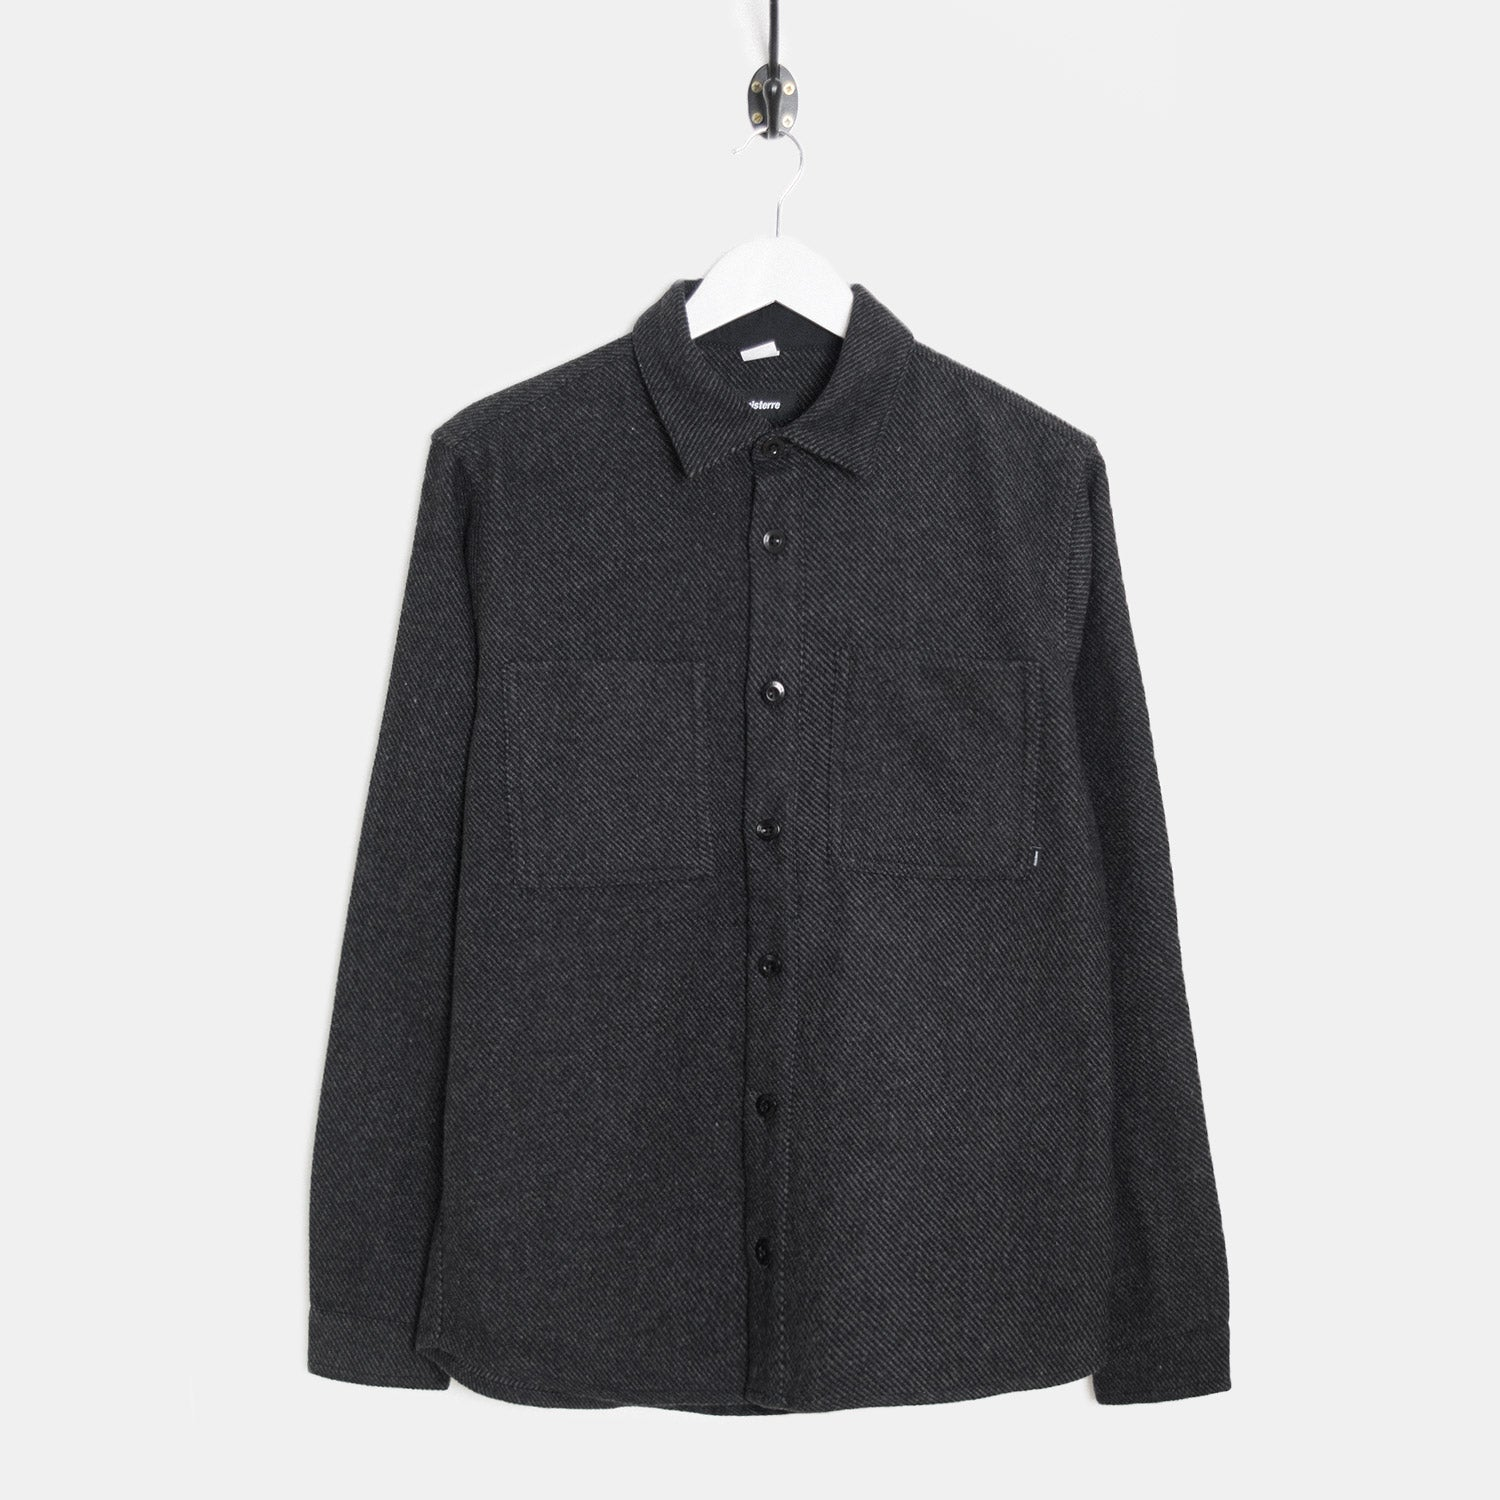 Finisterre Orbis Shirt - Charcoal Shirt - CARTOCON